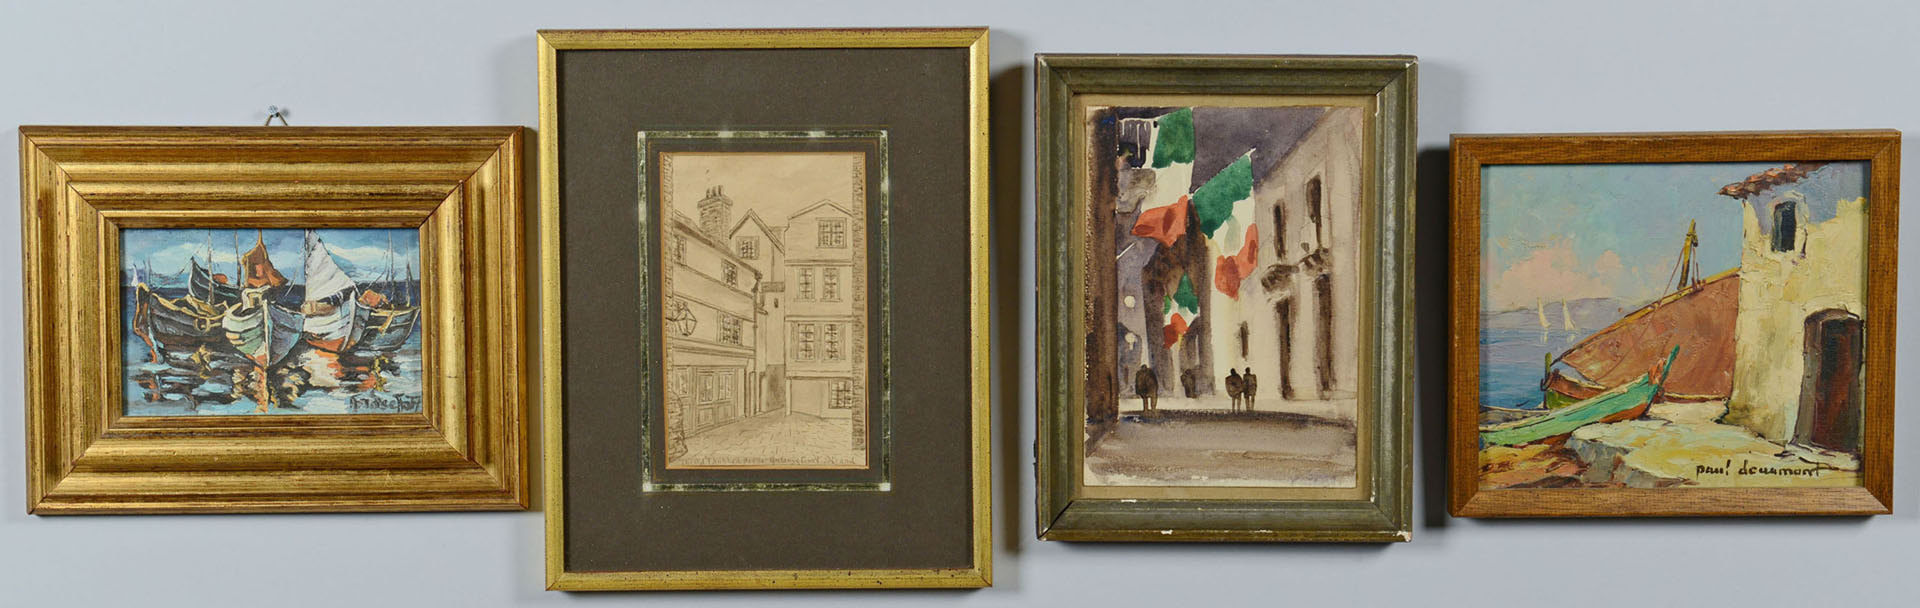 Lot 726: Grouping of 4 Small Works of Art